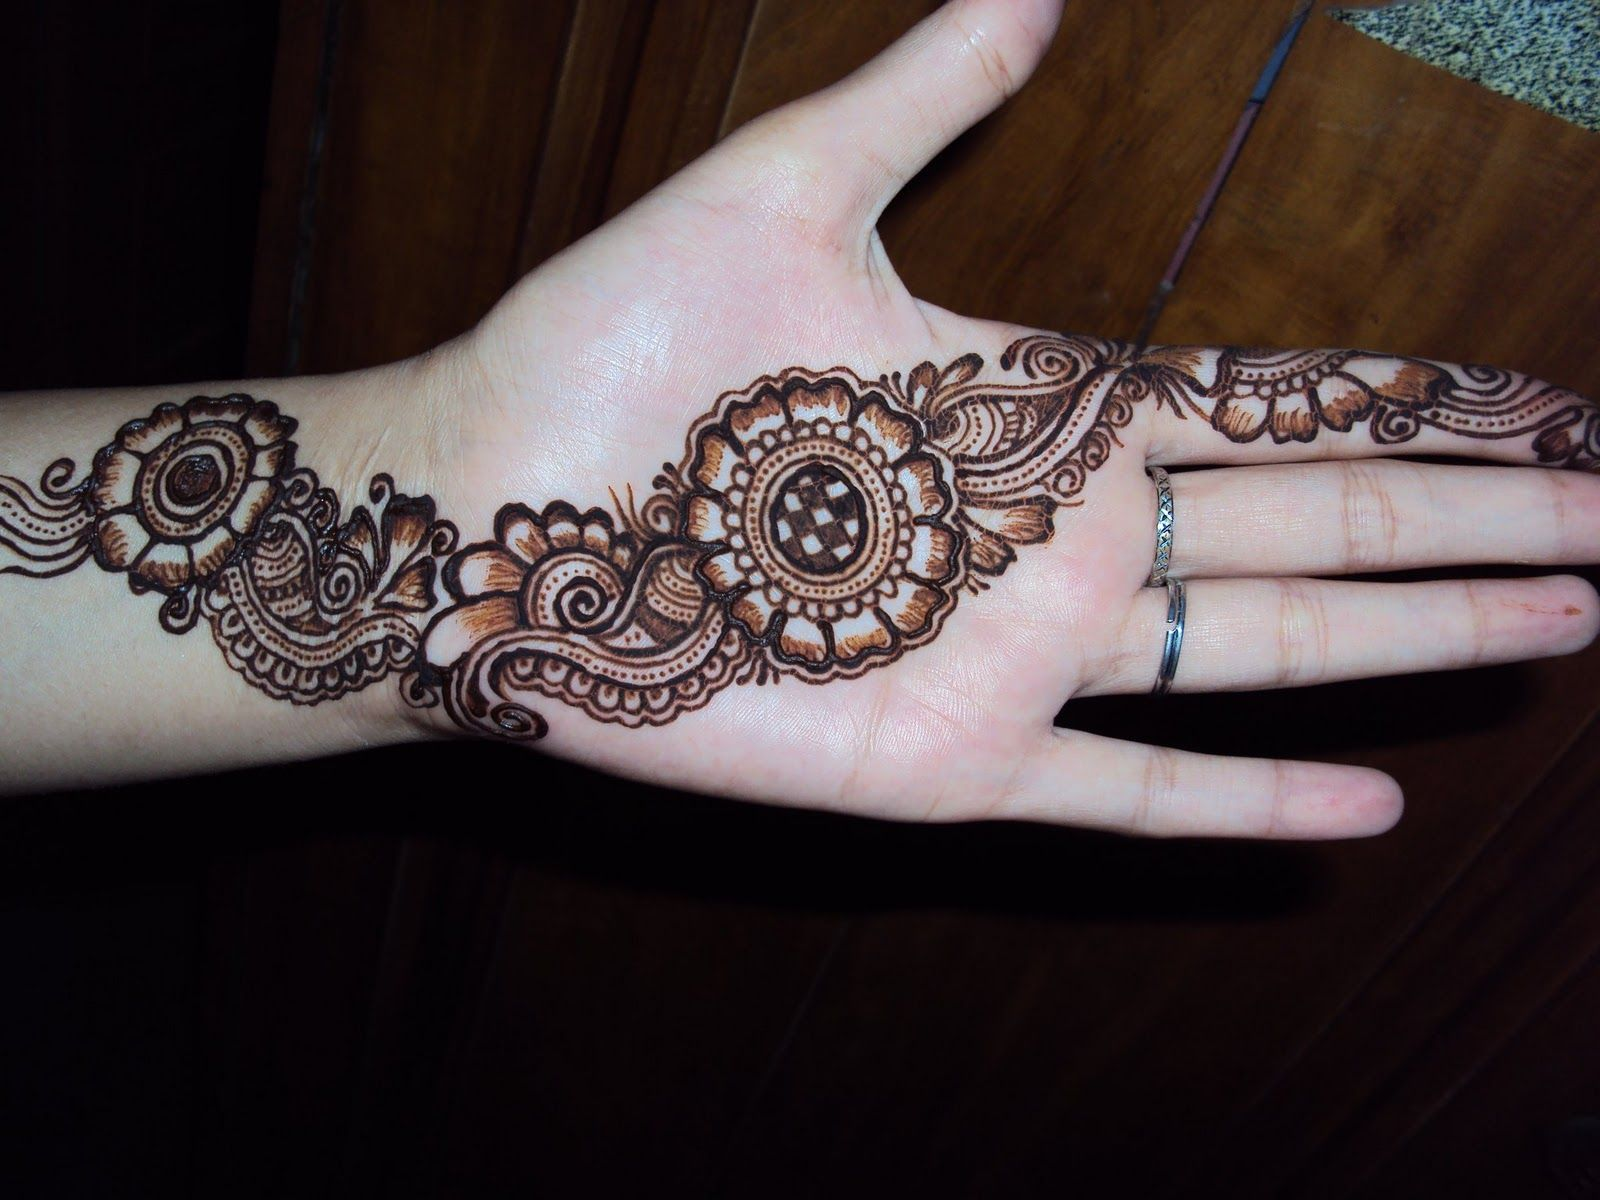 Simple and Beautiful Mehndi Designs | Simple Mehndi Designs by ... for Latest Simple Mehndi Designs For Hands 2012 Images  570bof